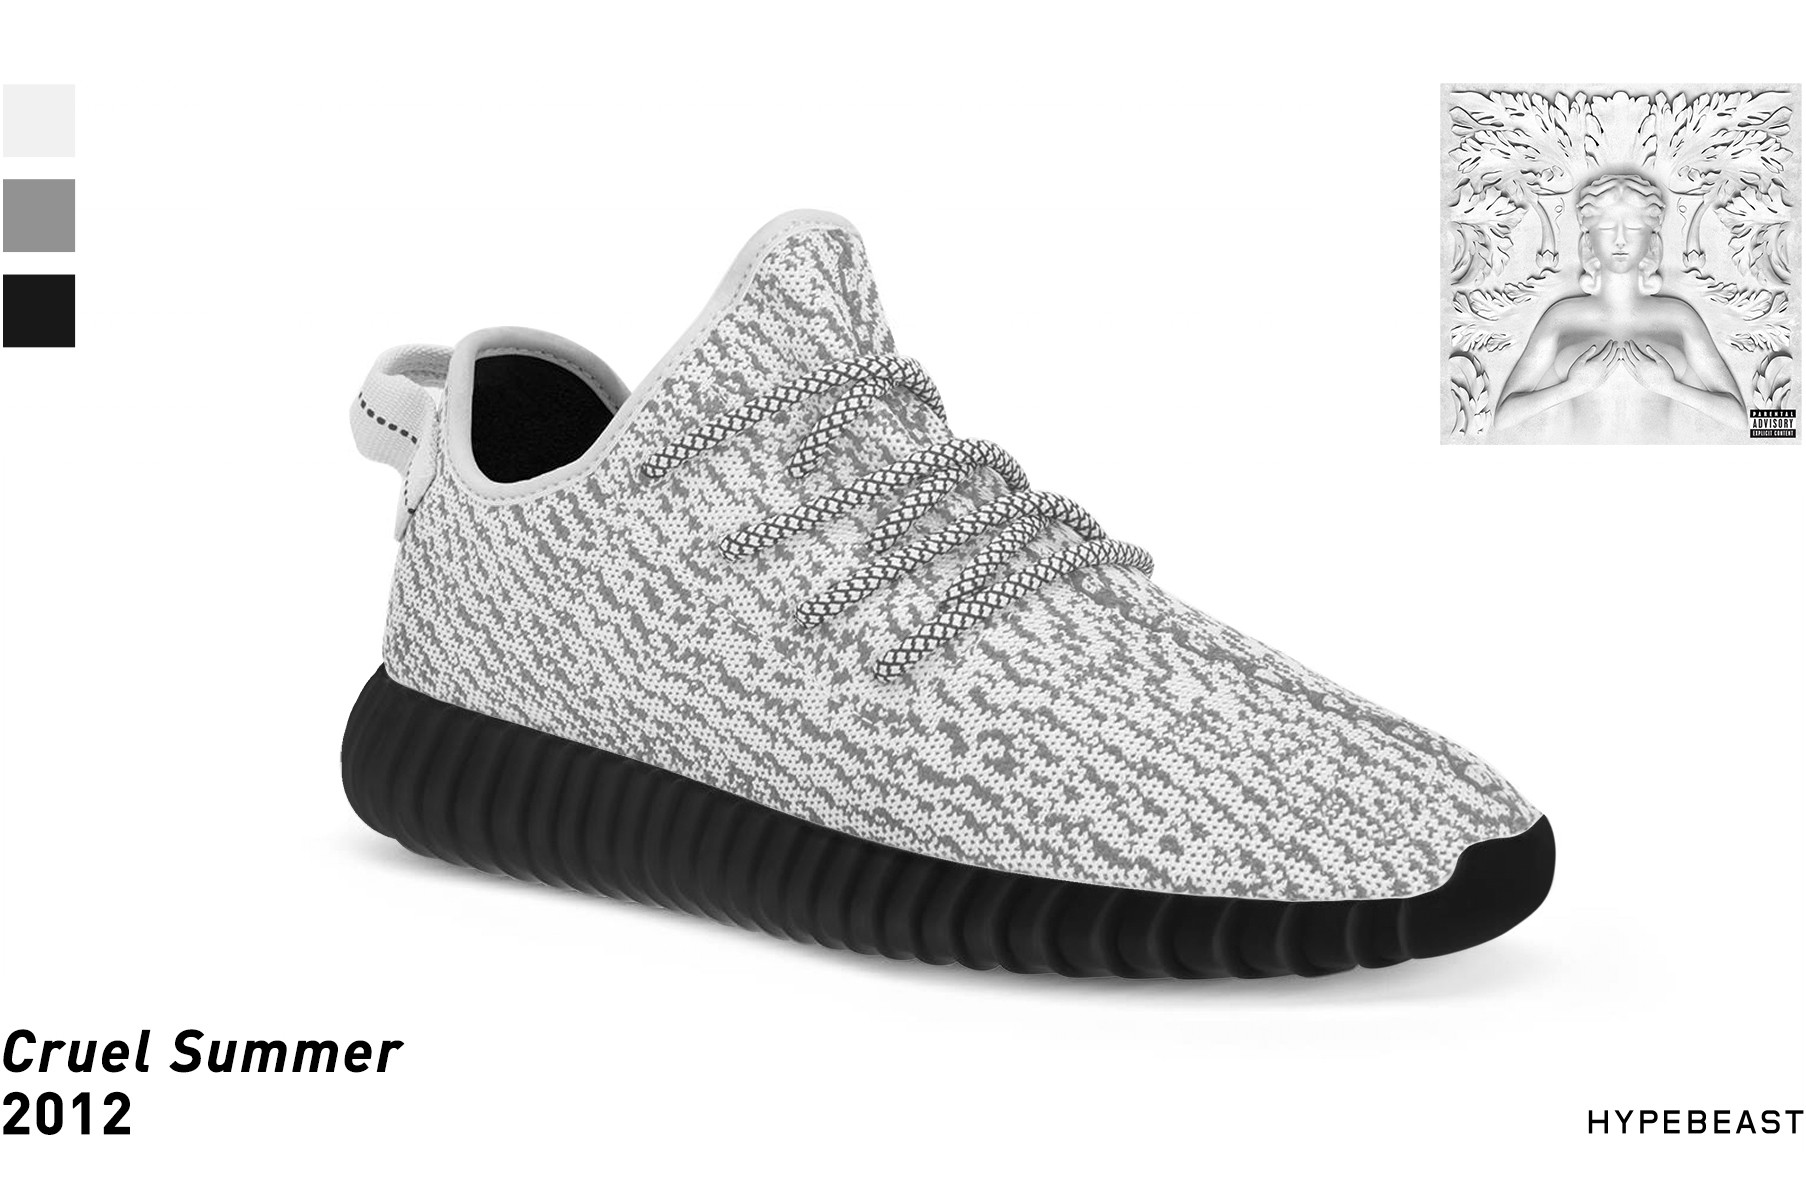 Yeezy Boost 350s Inspired by Kanye